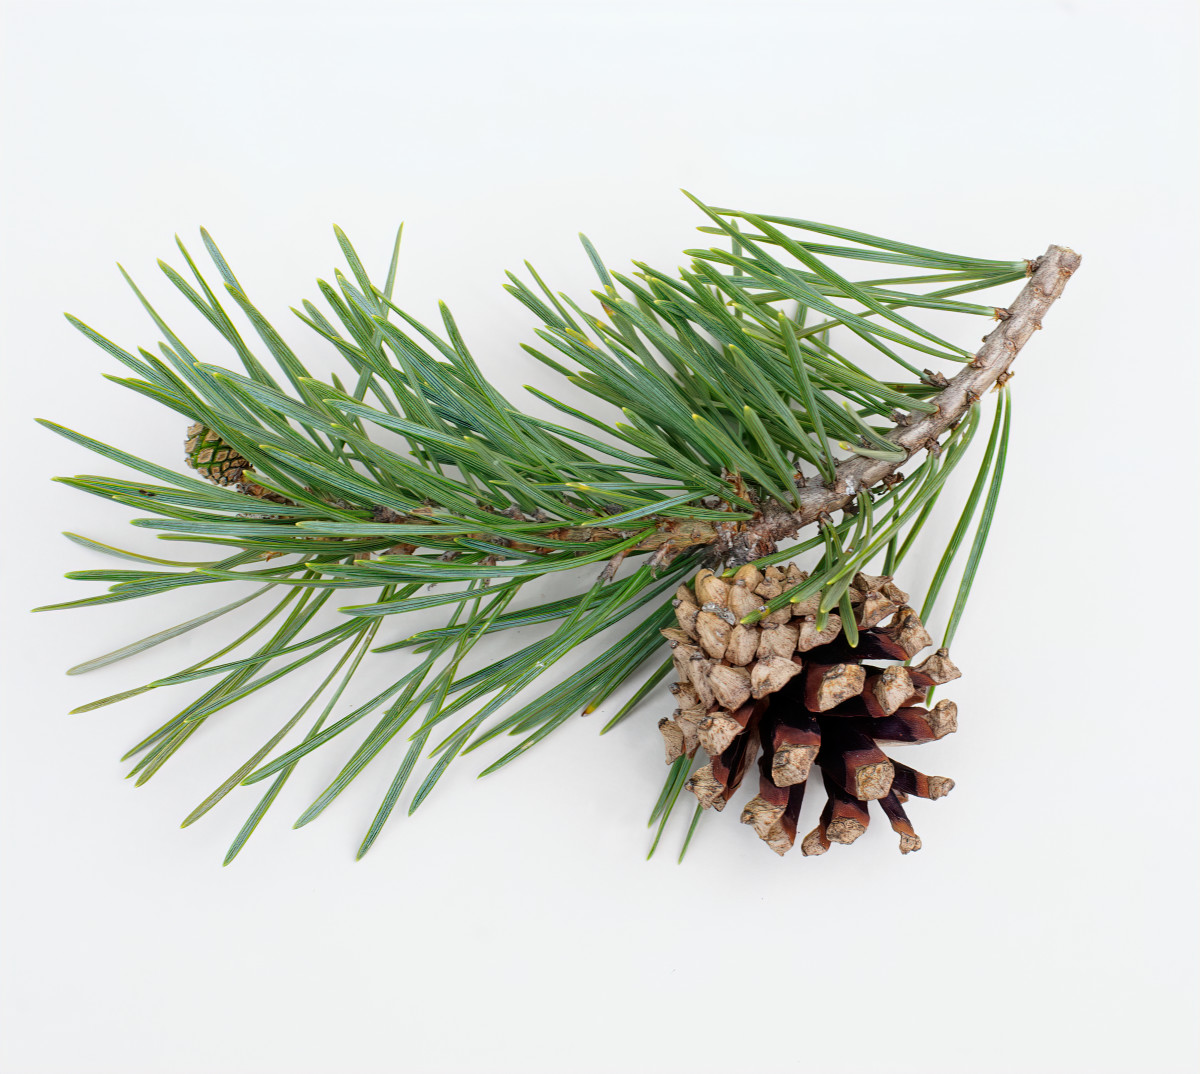 SCOTS PINE TREE BRANCH WITH SEED CONE